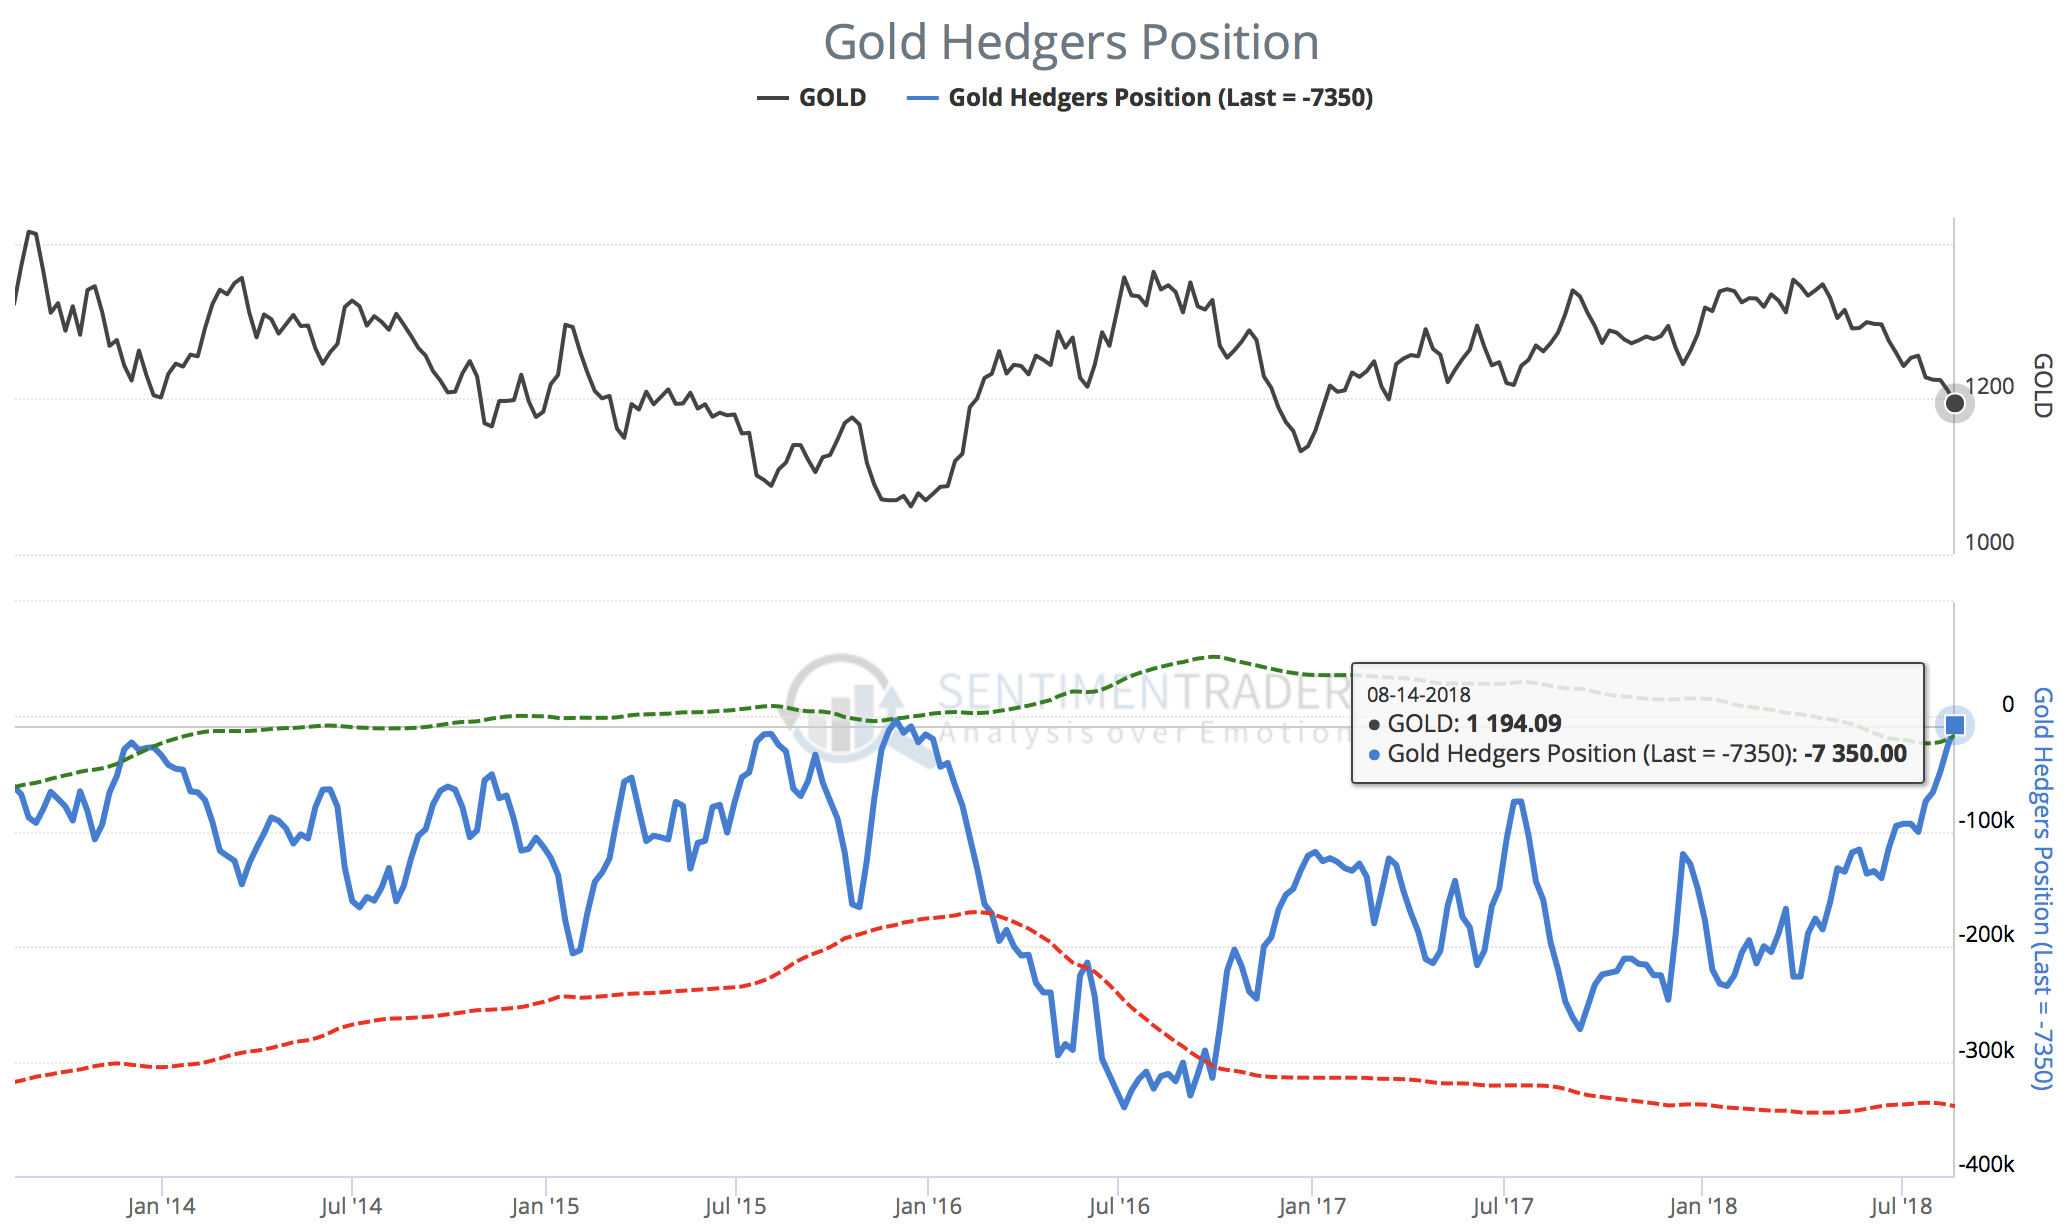 Gold Hedgers Position as of August 14th, 2018.